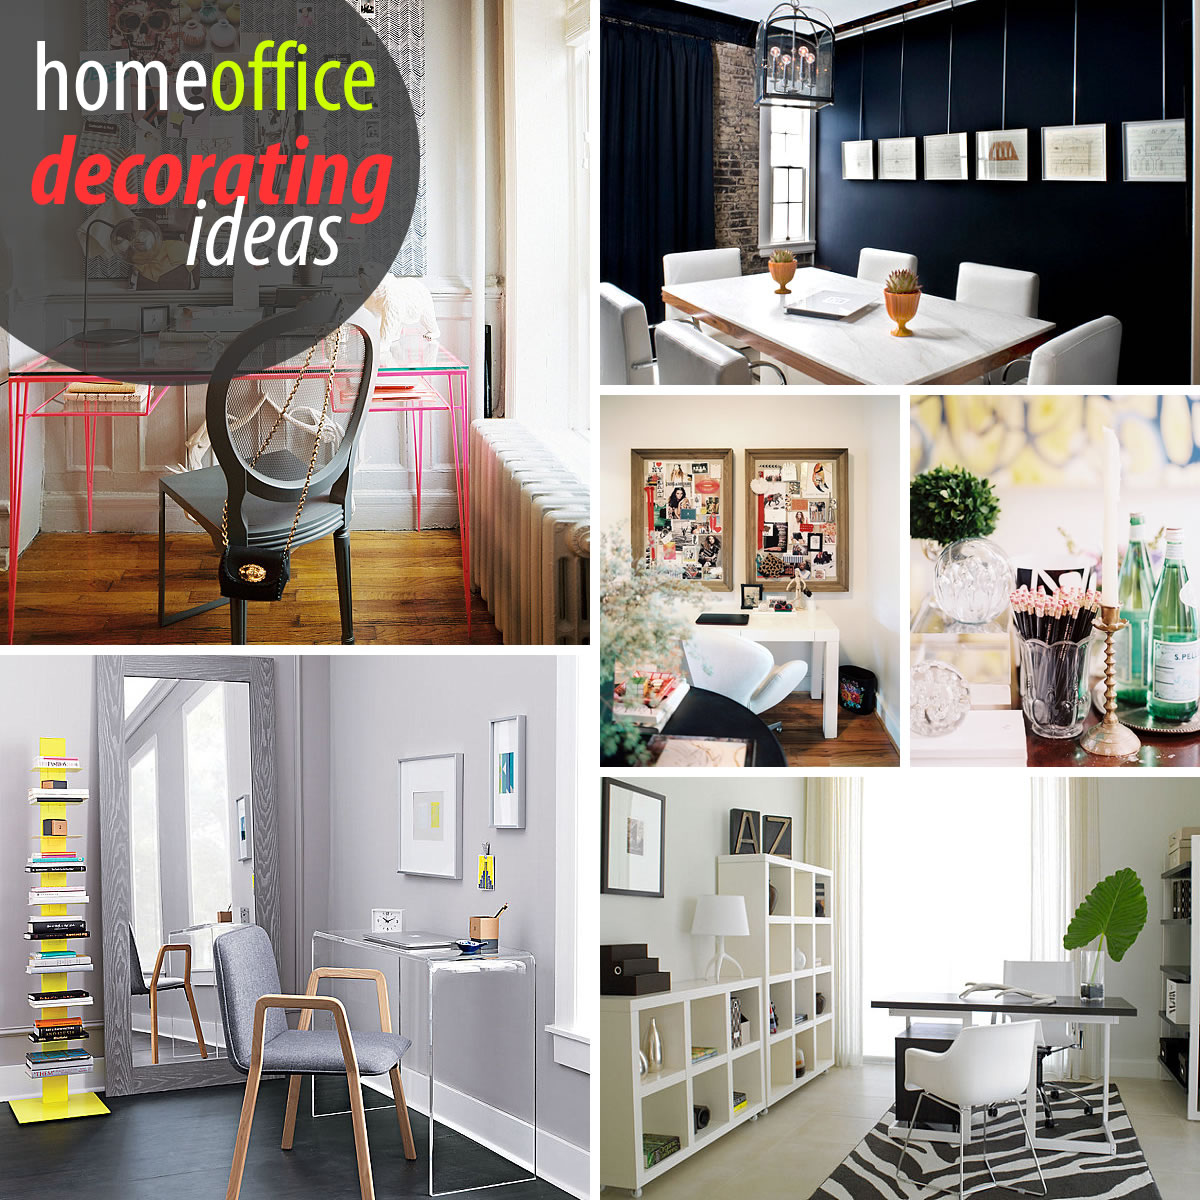 Creative home office decorating ideas for Home office remodel ideas